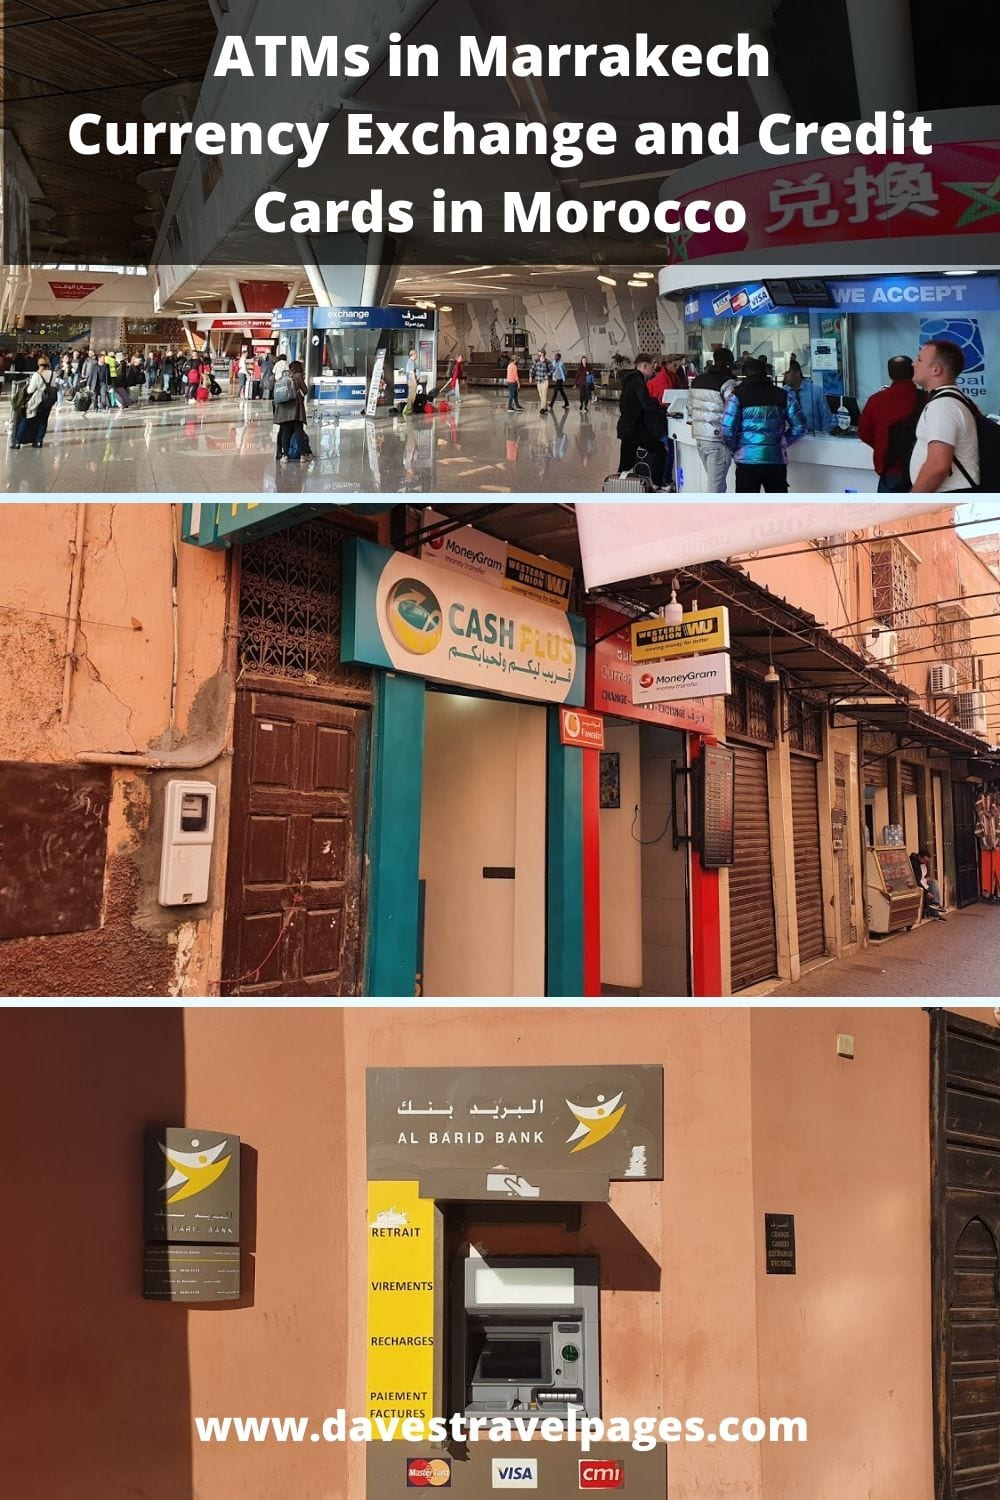 ATMs in Marrakech - Currency Exchange and Credit Cards in Morocco